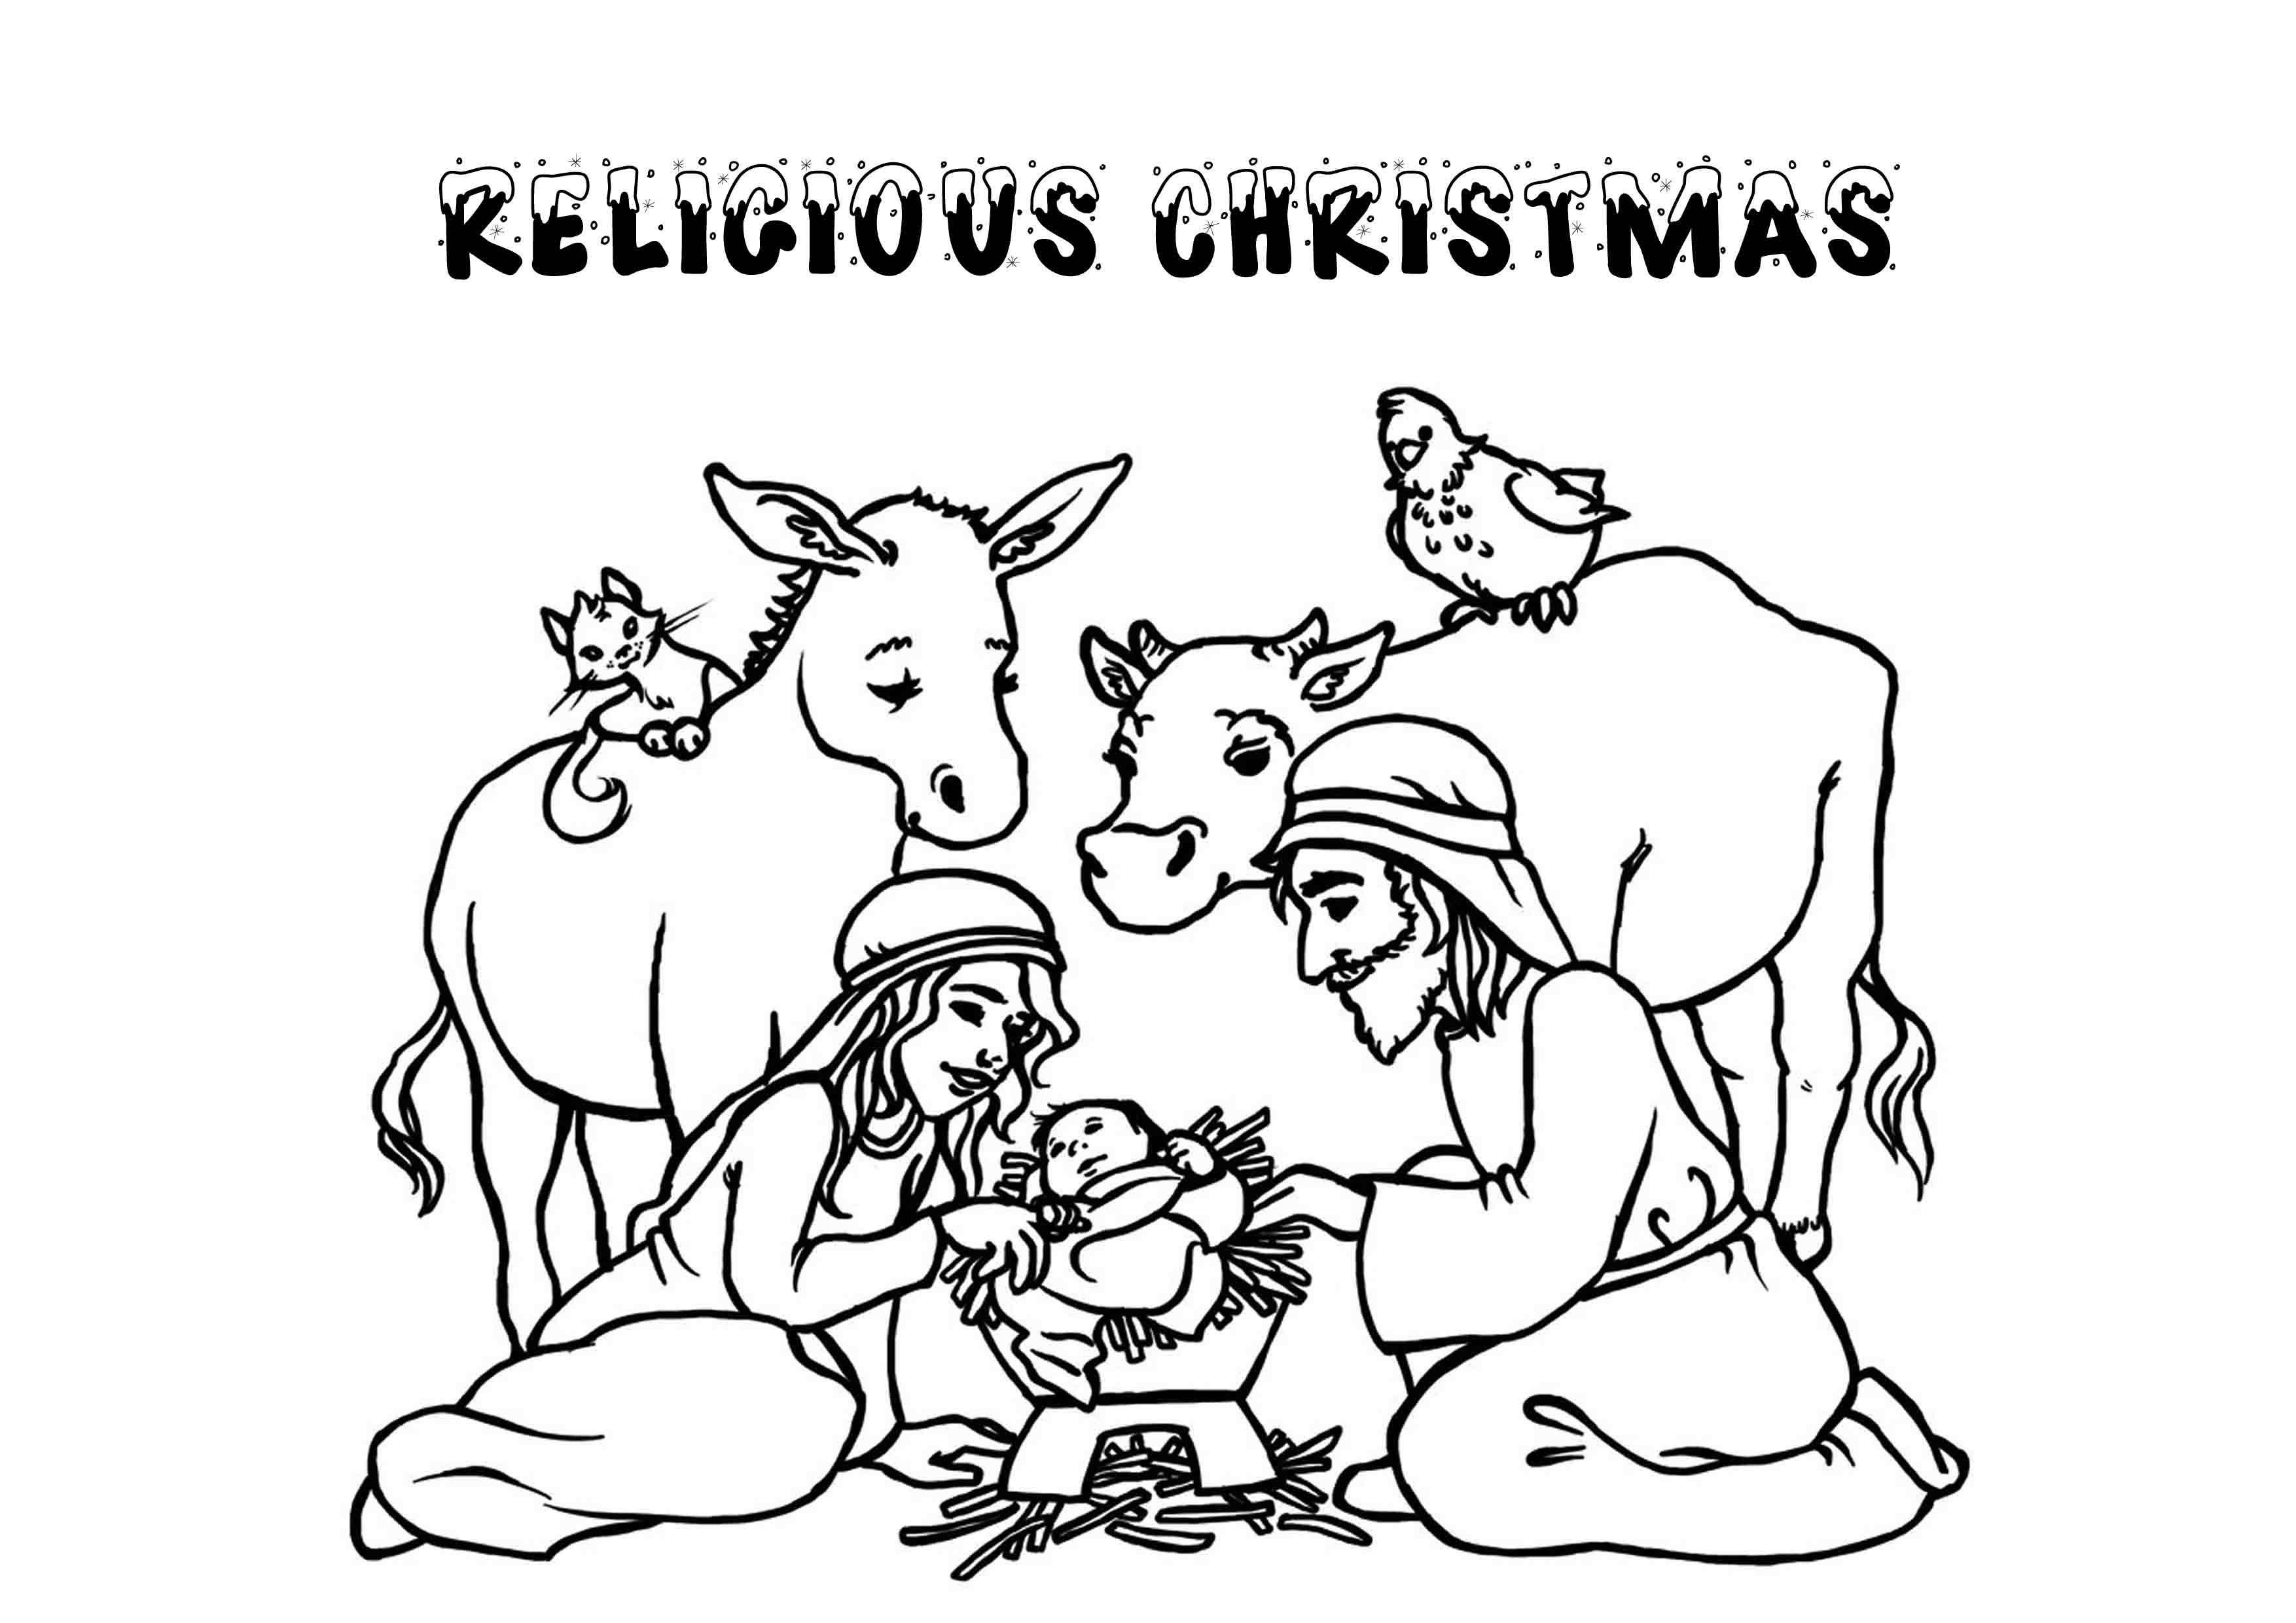 Christmas Religious Printable Coloring Pages